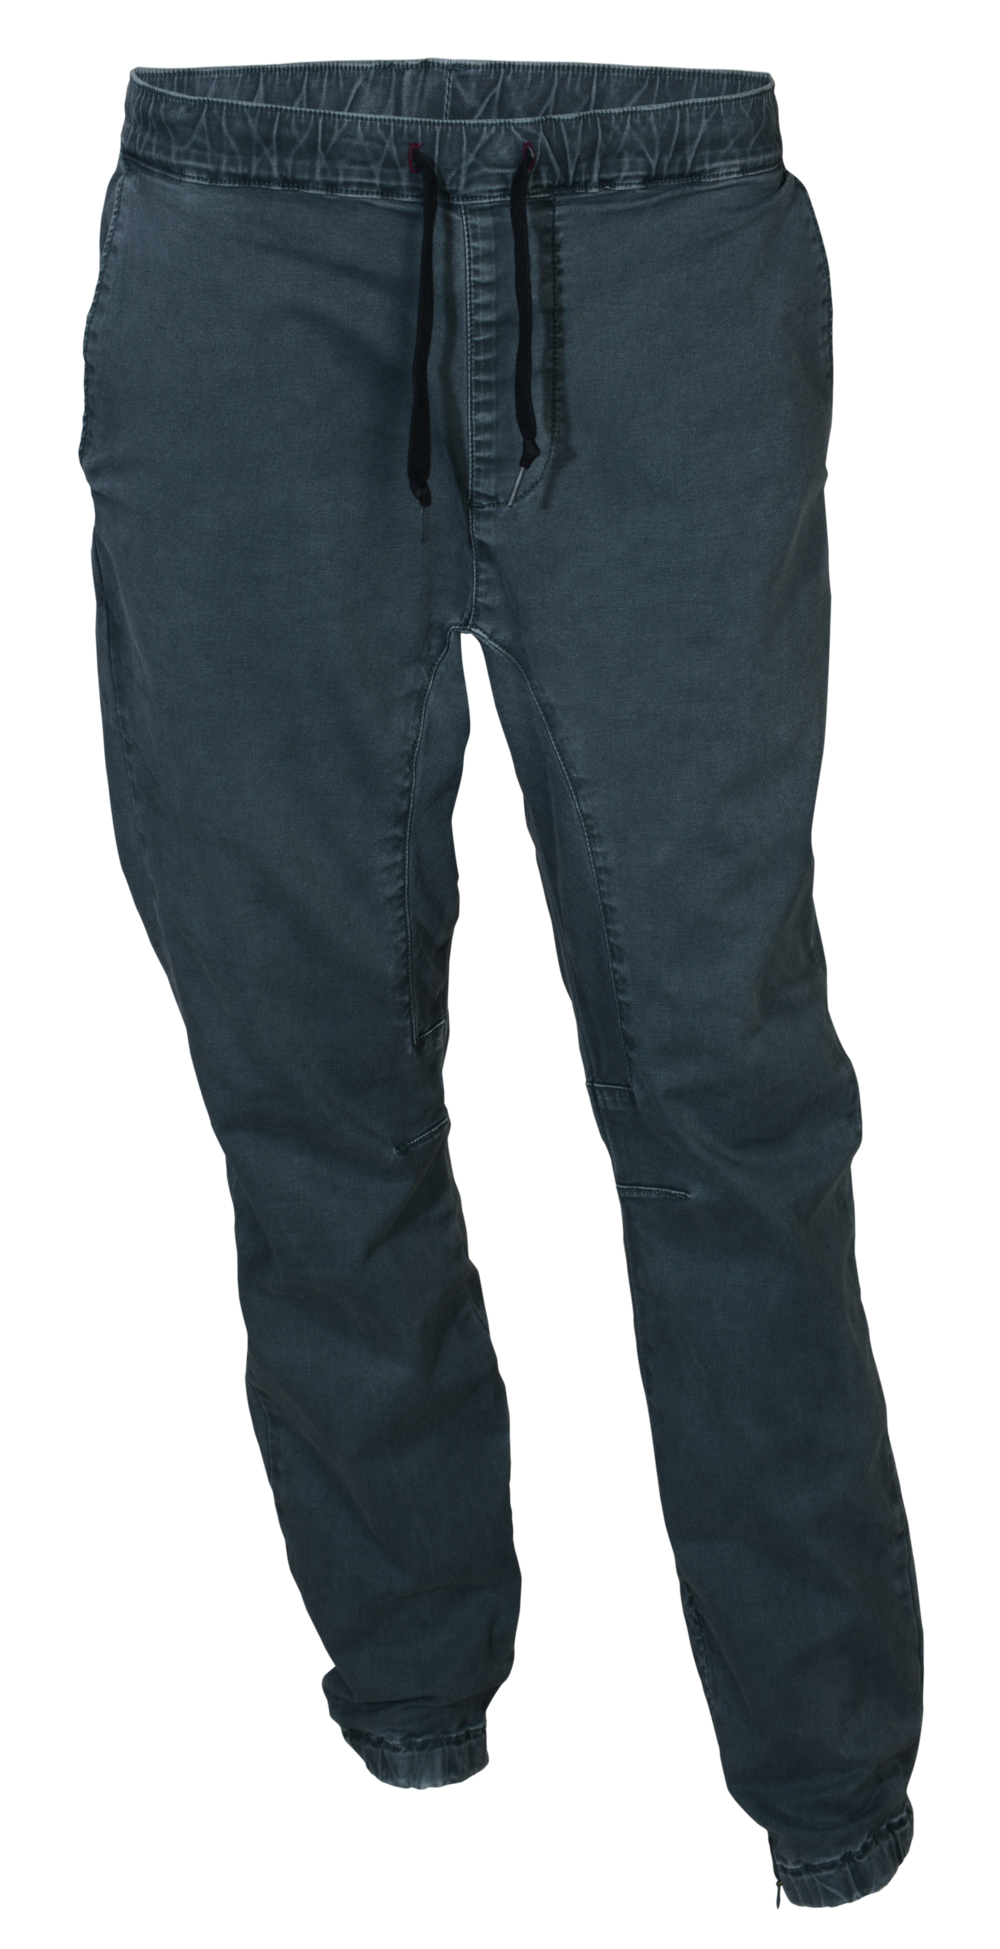 gray_joggers.png